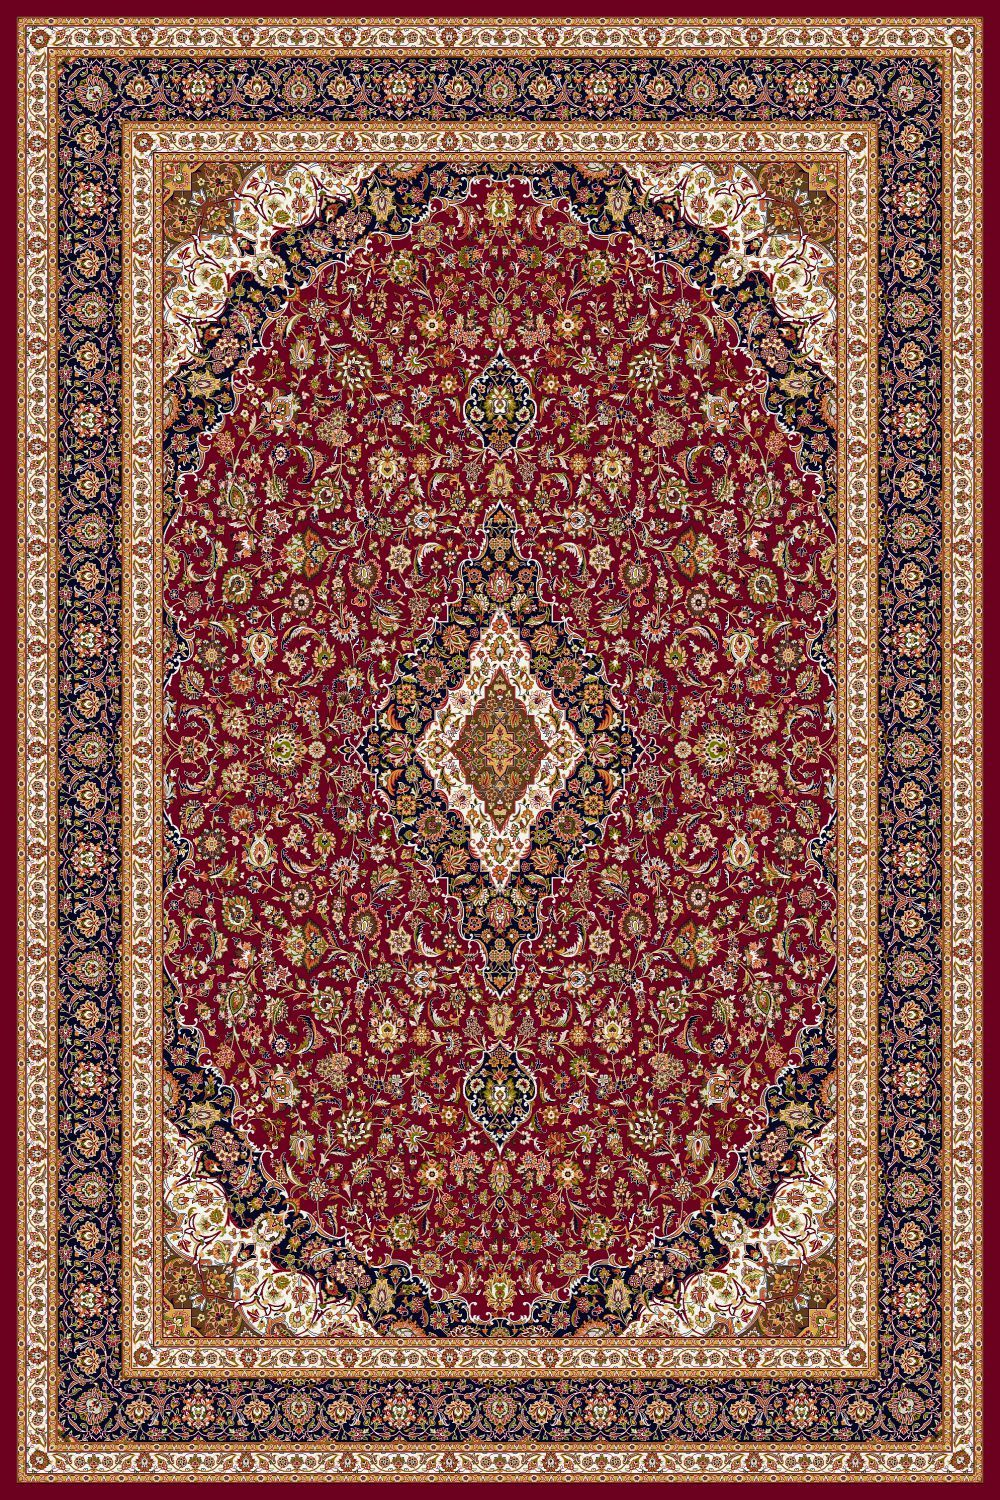 Area Rugs - Persian Treasures - Kashan - Red